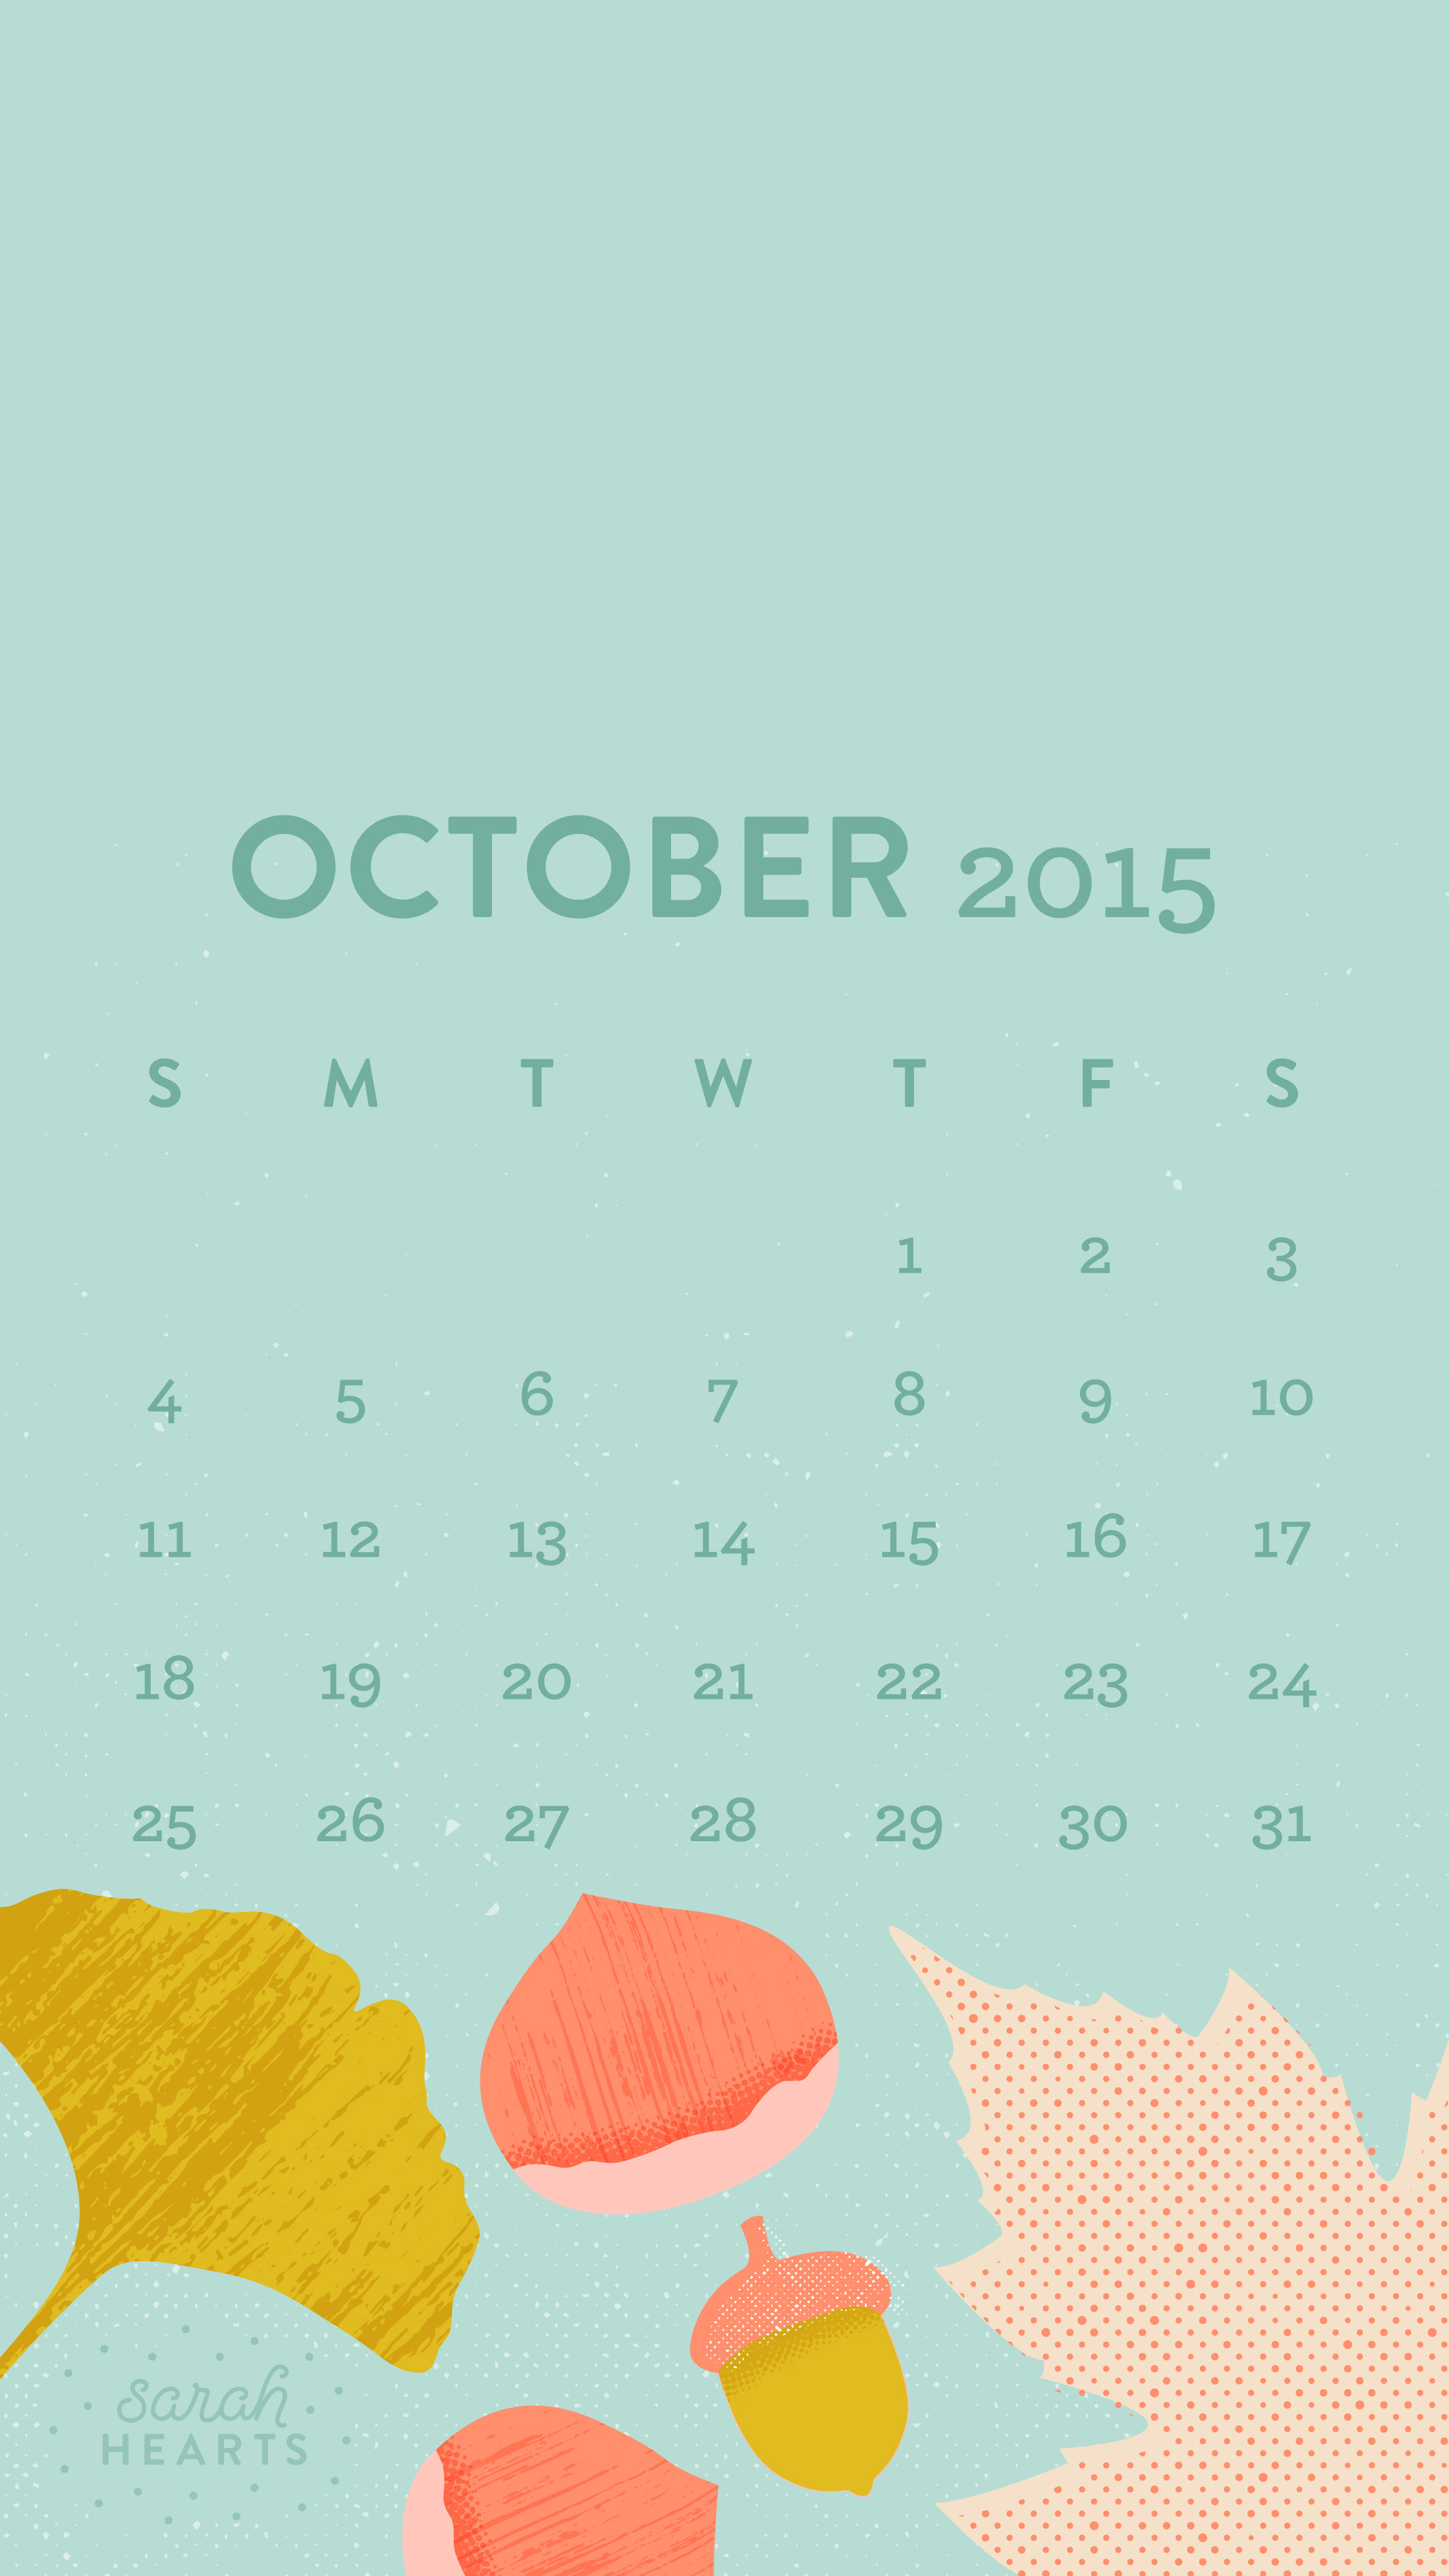 October 2015 Calendar Wallpaper   Sarah Hearts 2250x4000